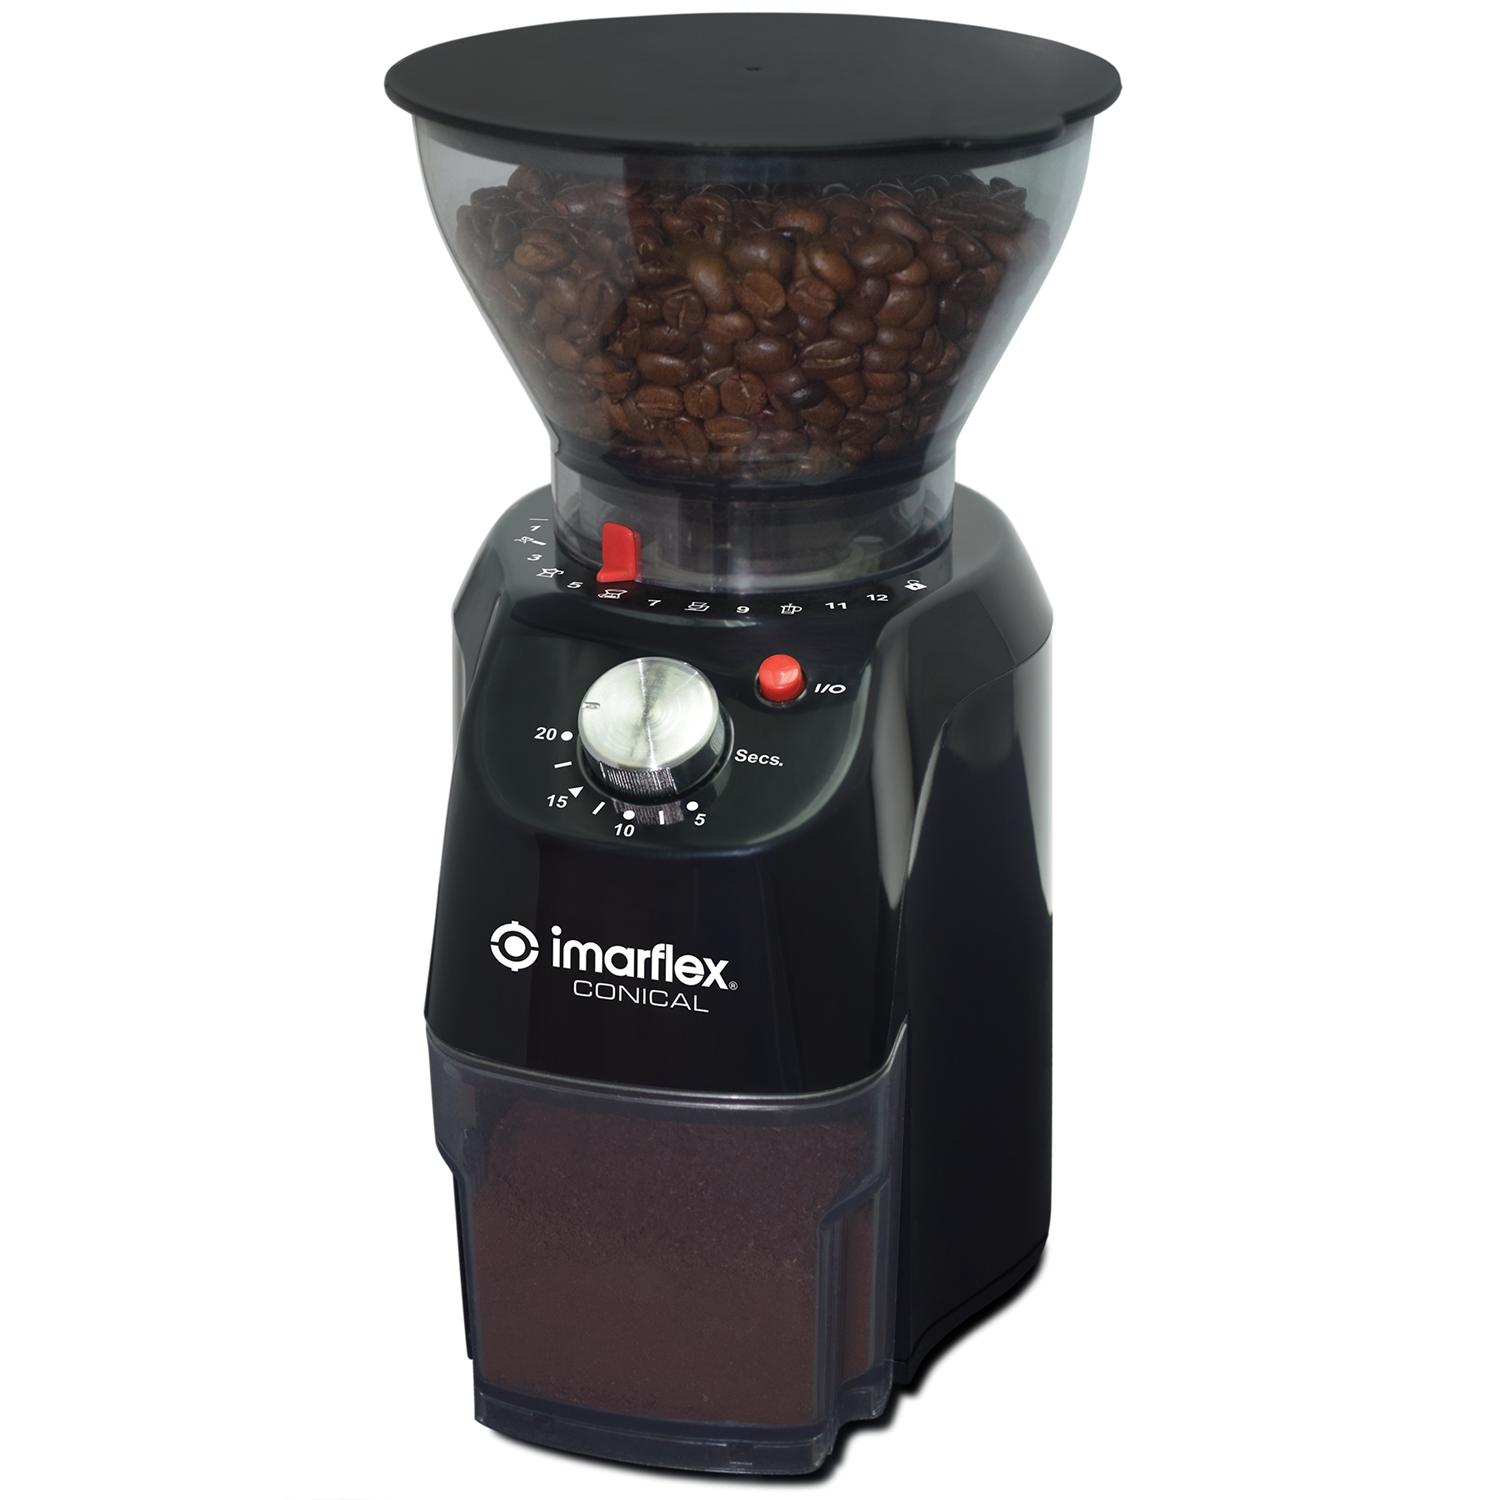 Coffee Grinder for sale - Coffee Bean Grinder prices, brands & review in Philippines   Lazada.com.ph